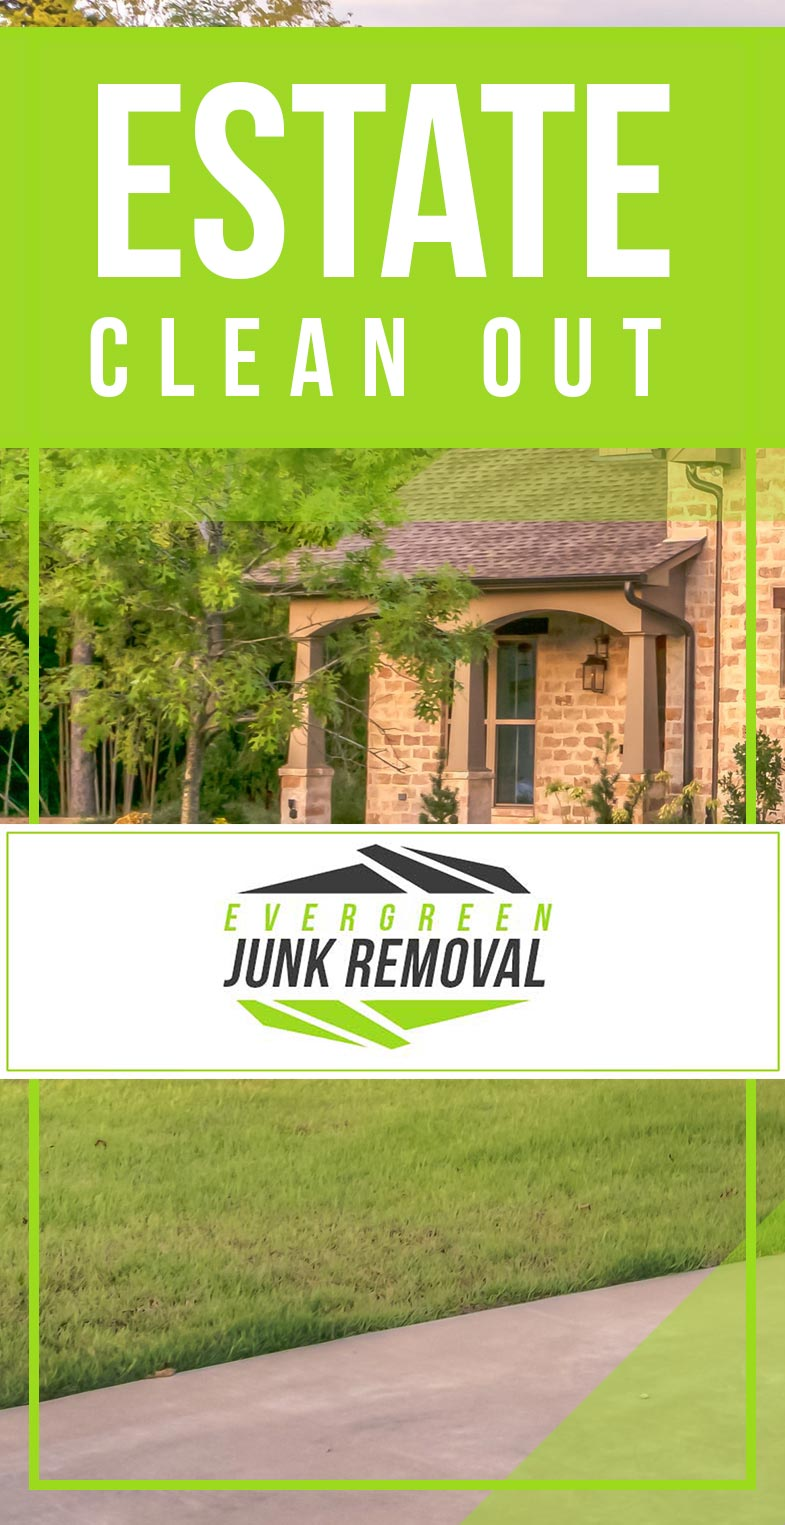 Grass Valley Property Clean Out